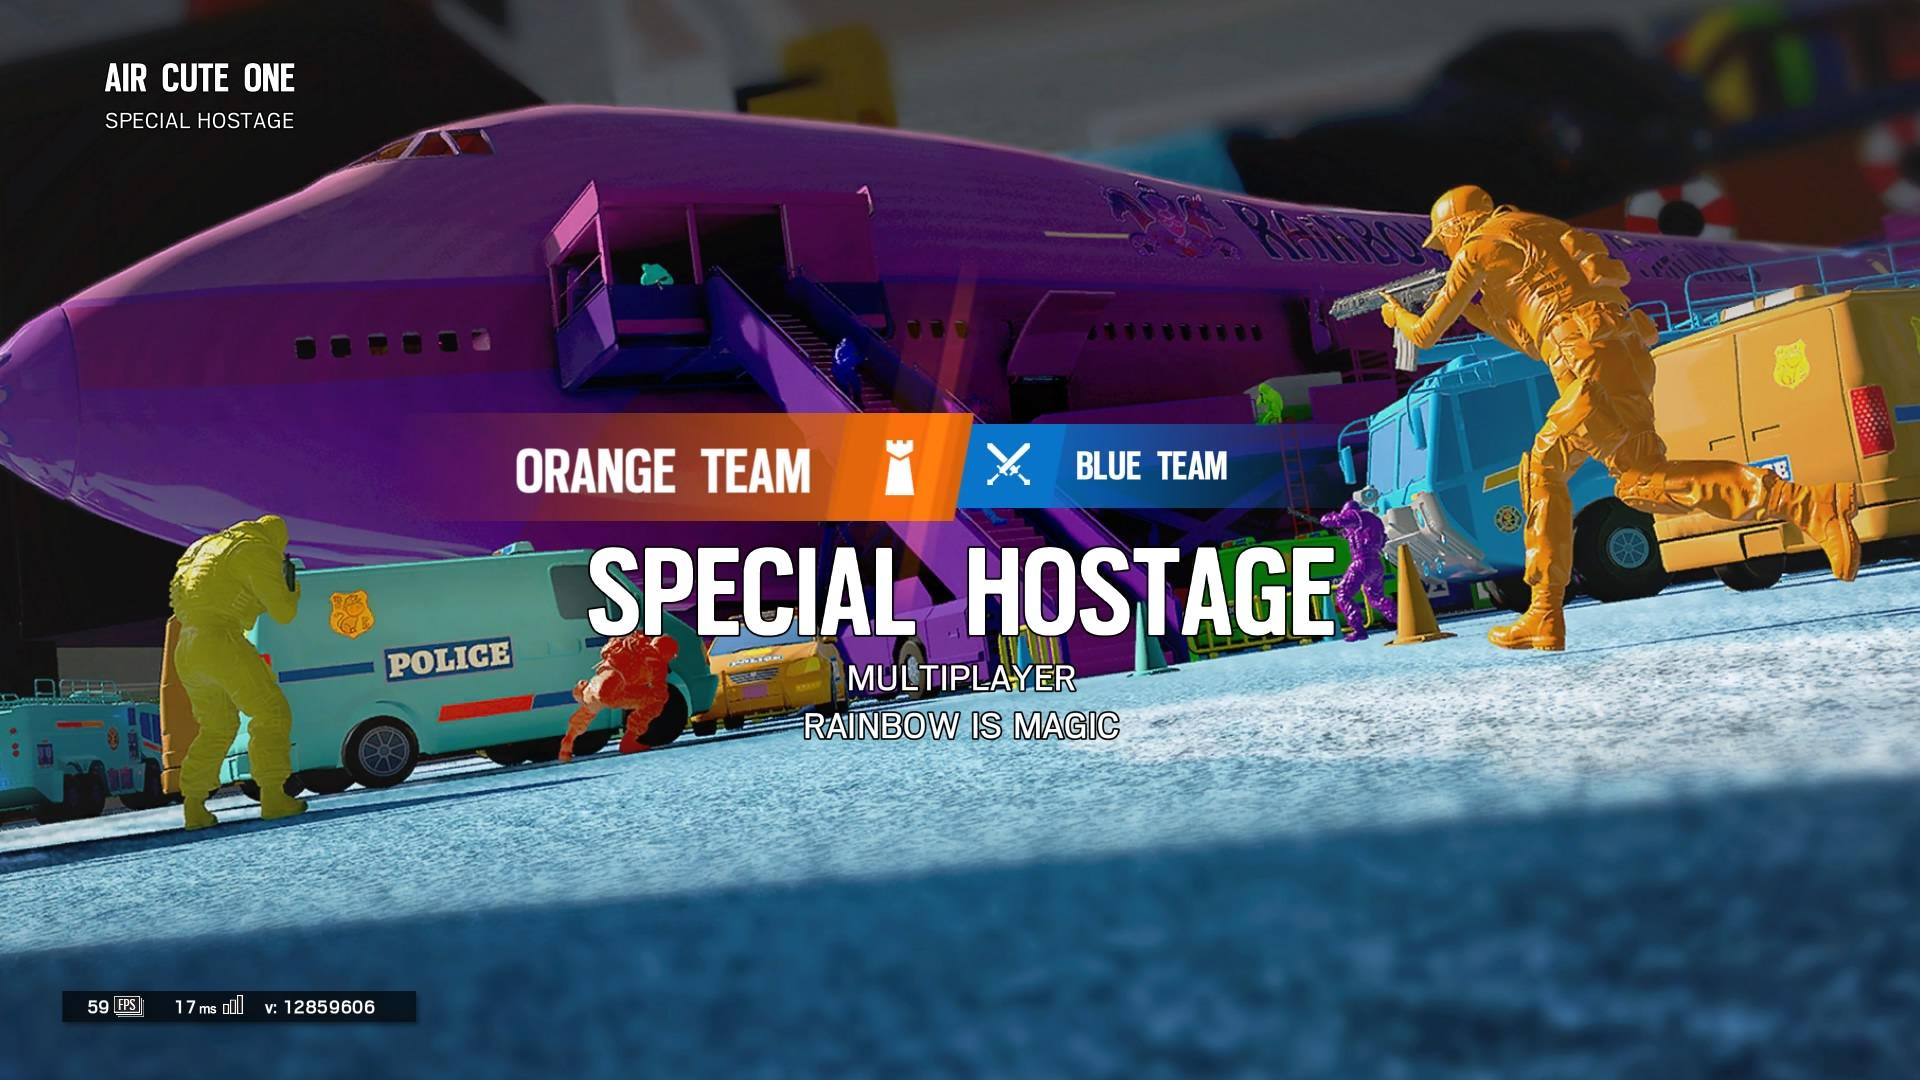 Special Hostage